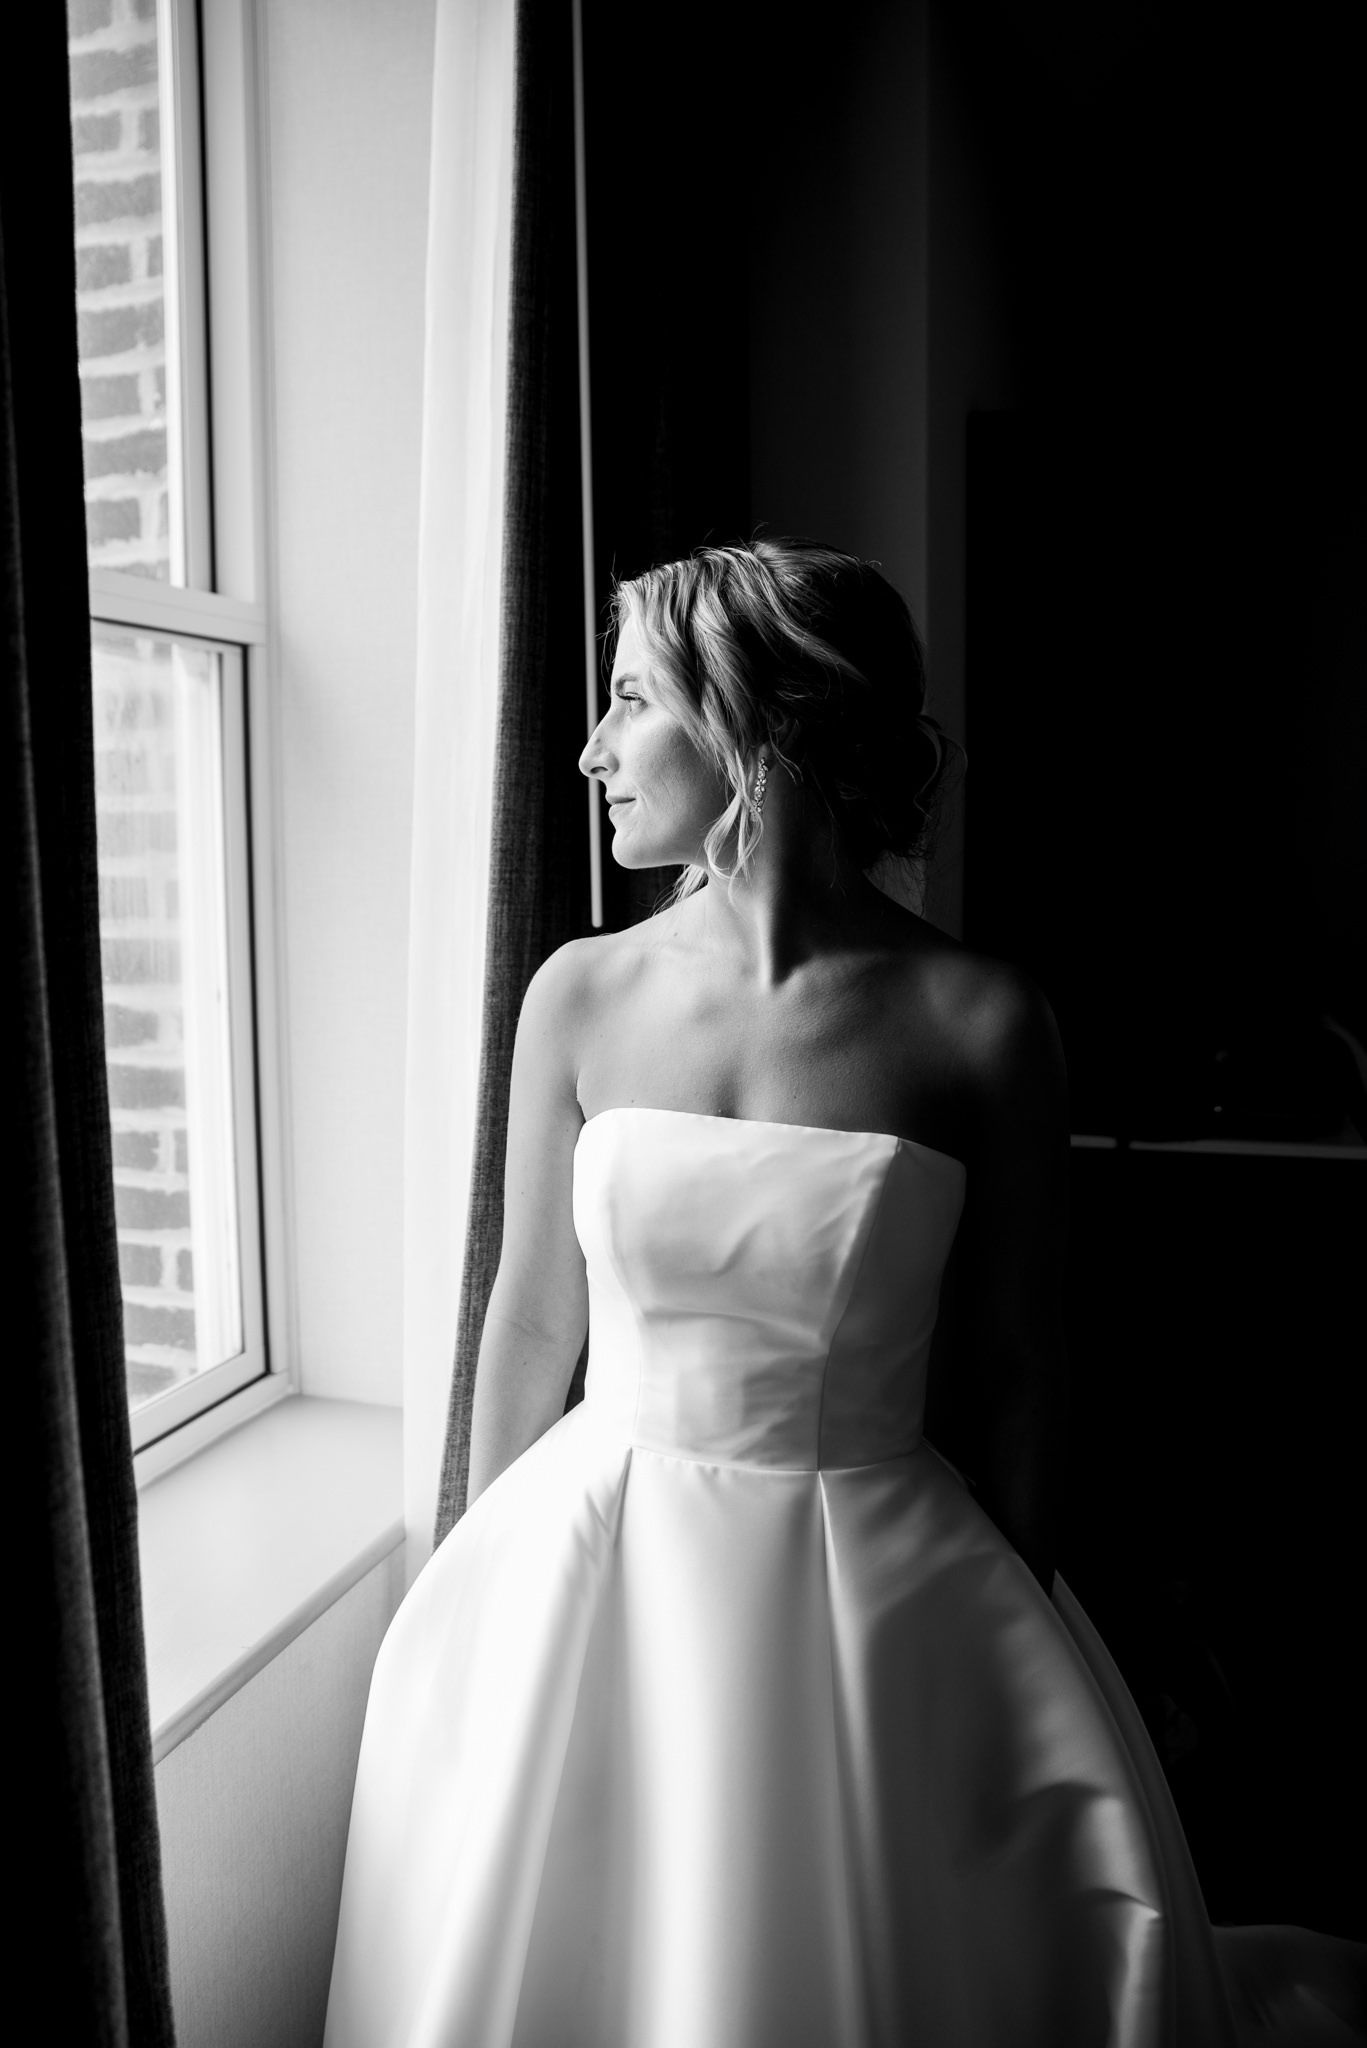 blonde bride with updo and strapless wedding dress looking out the window while getting ready